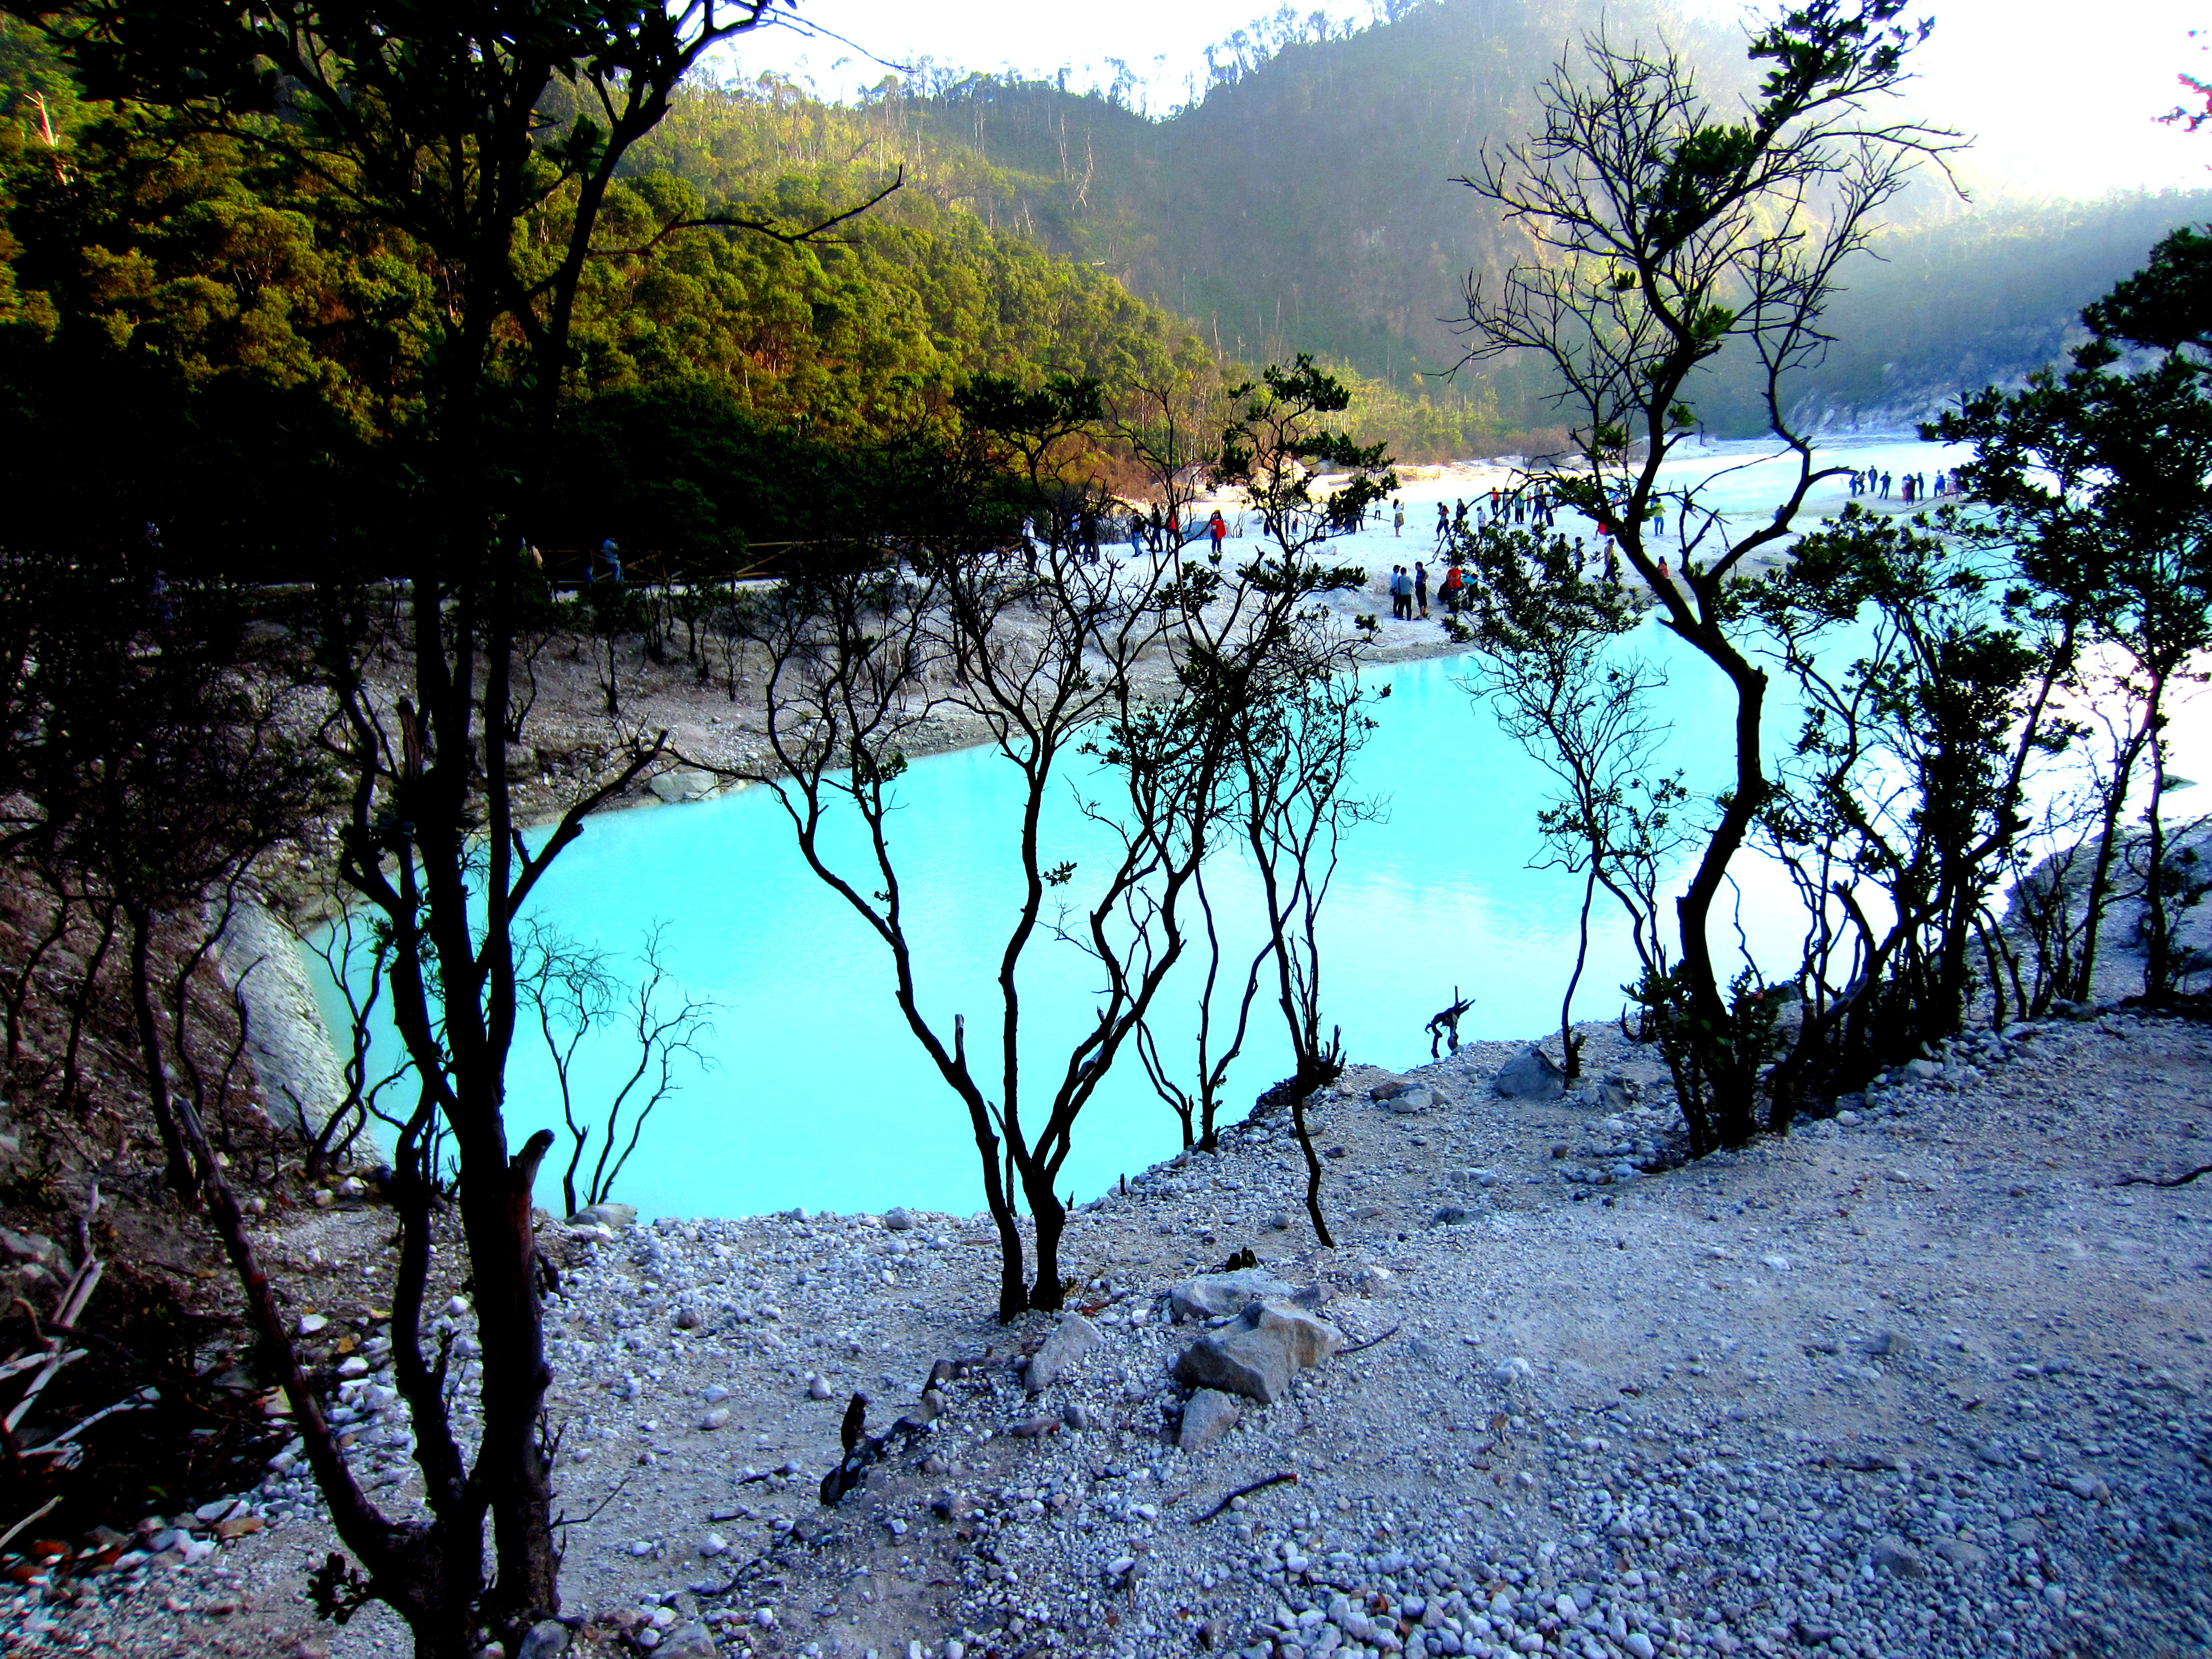 Backpacker Trip To Kawah Putih Not Just An Ordinary Trip Kawah Putih Rute Jakarta The Most Elegant  Kawah Putih Rute Jakarta